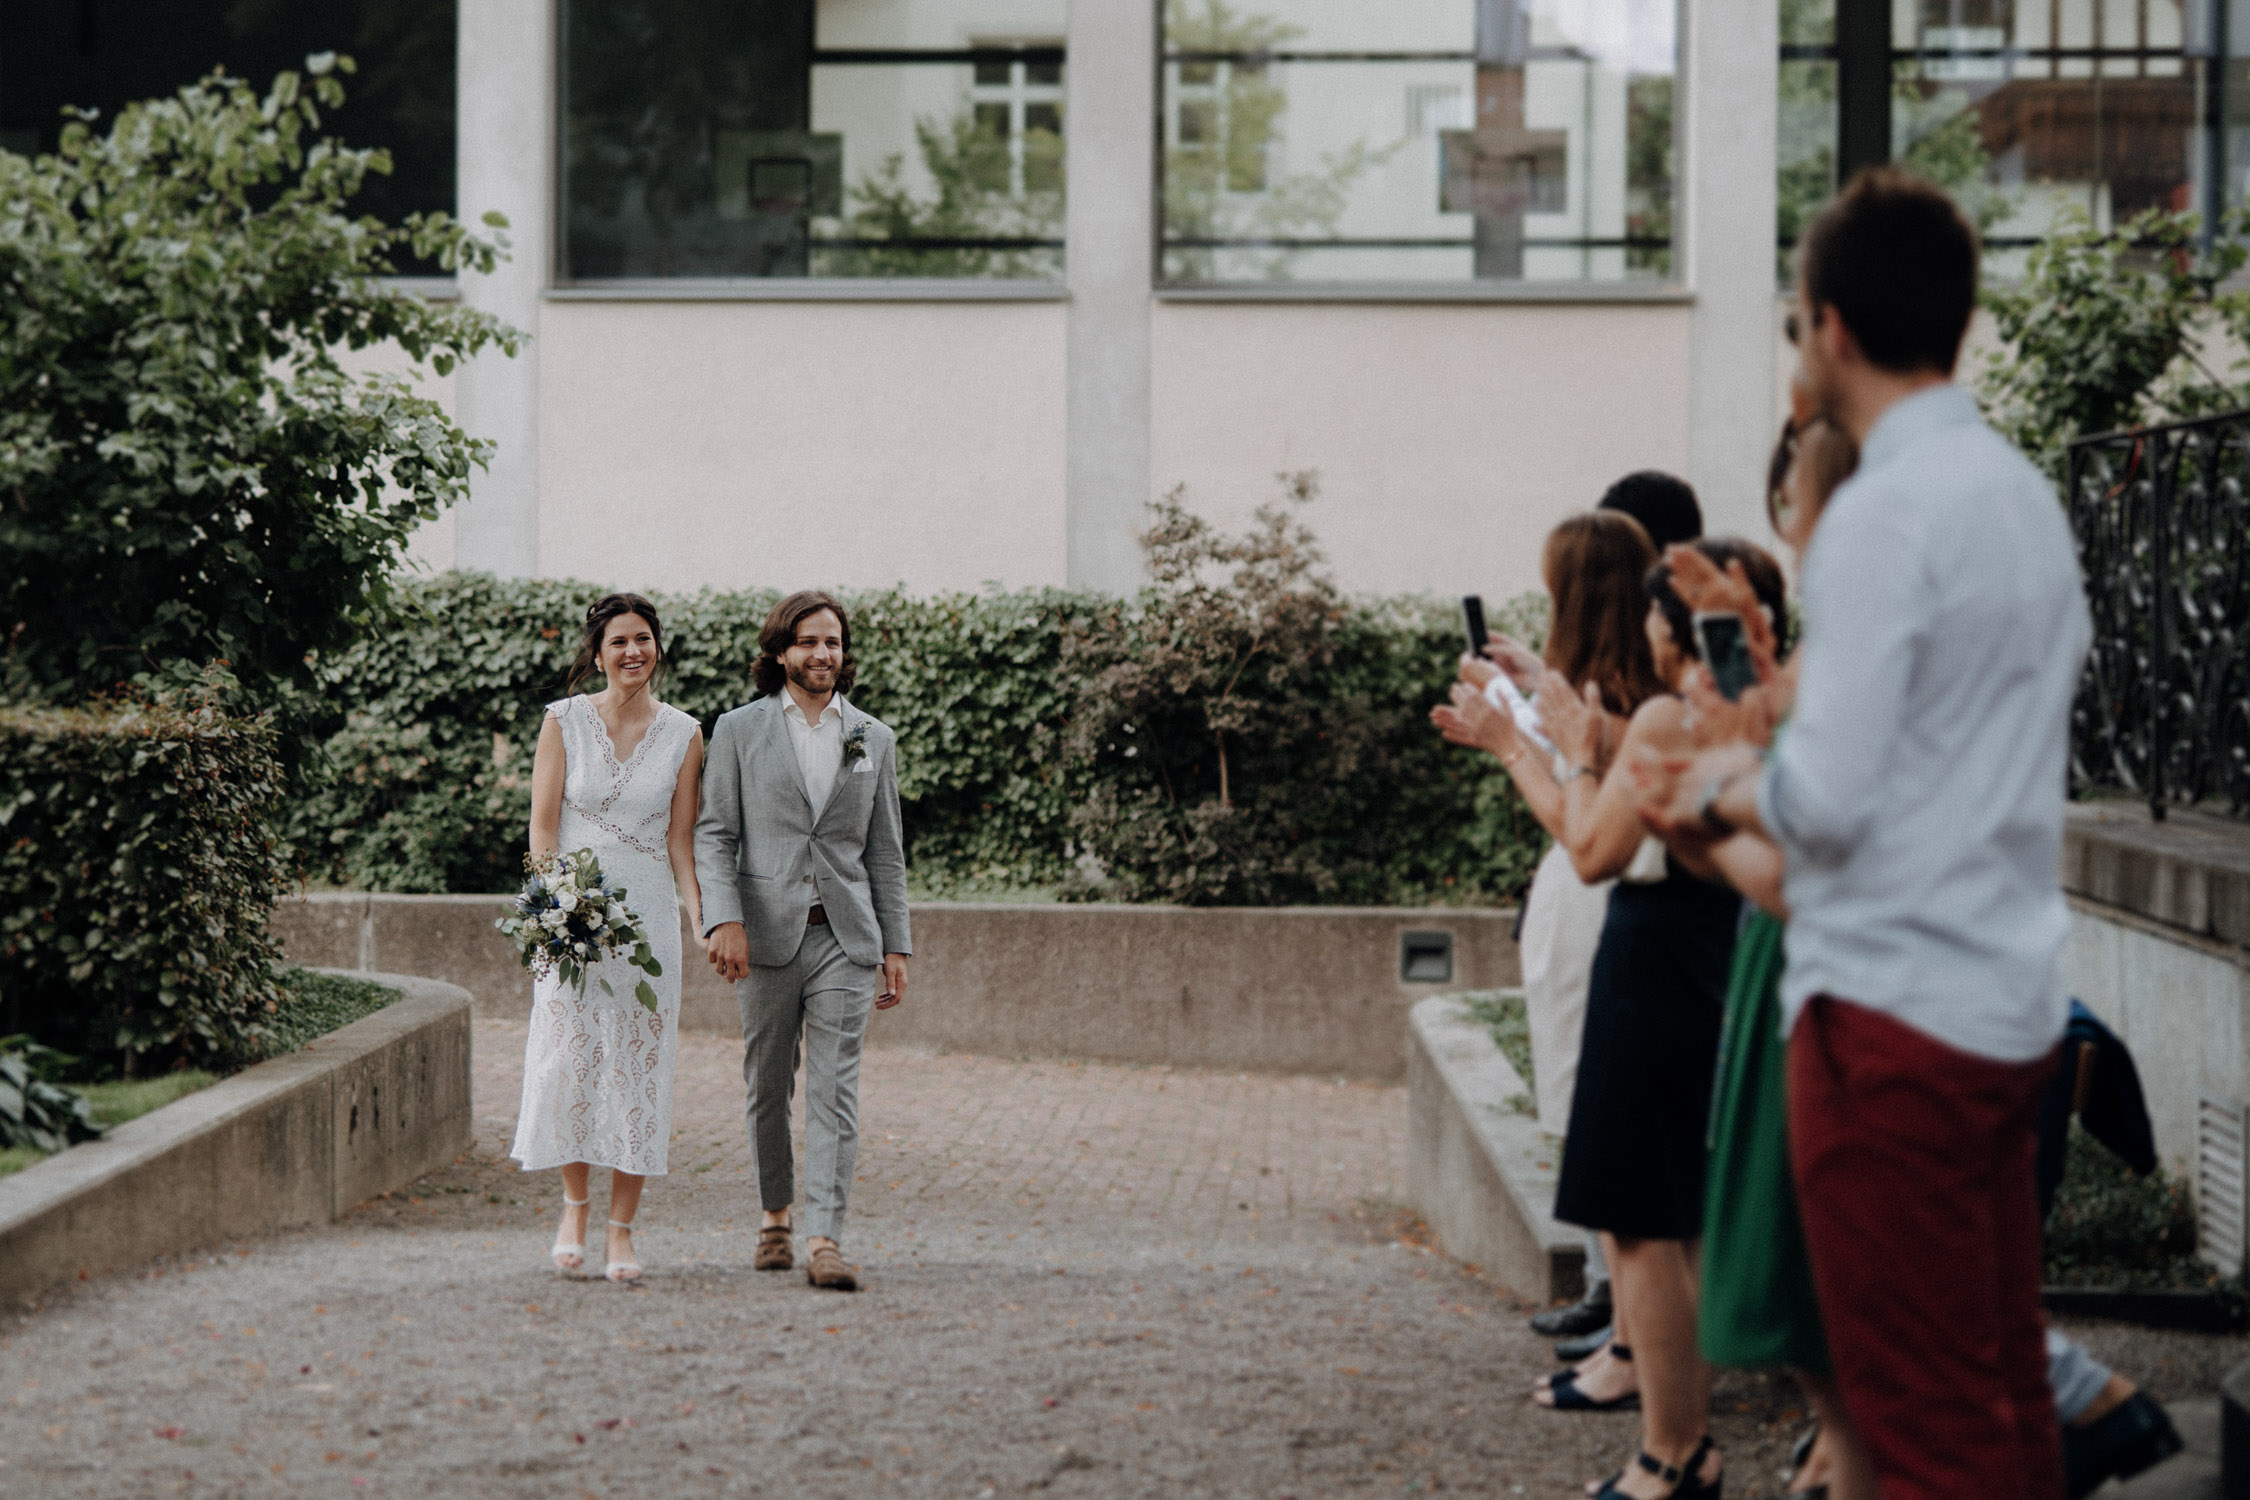 Wedding photographer switzerland basel natural unposed civil wedding old town Basel Minster couple shoot bohemian style